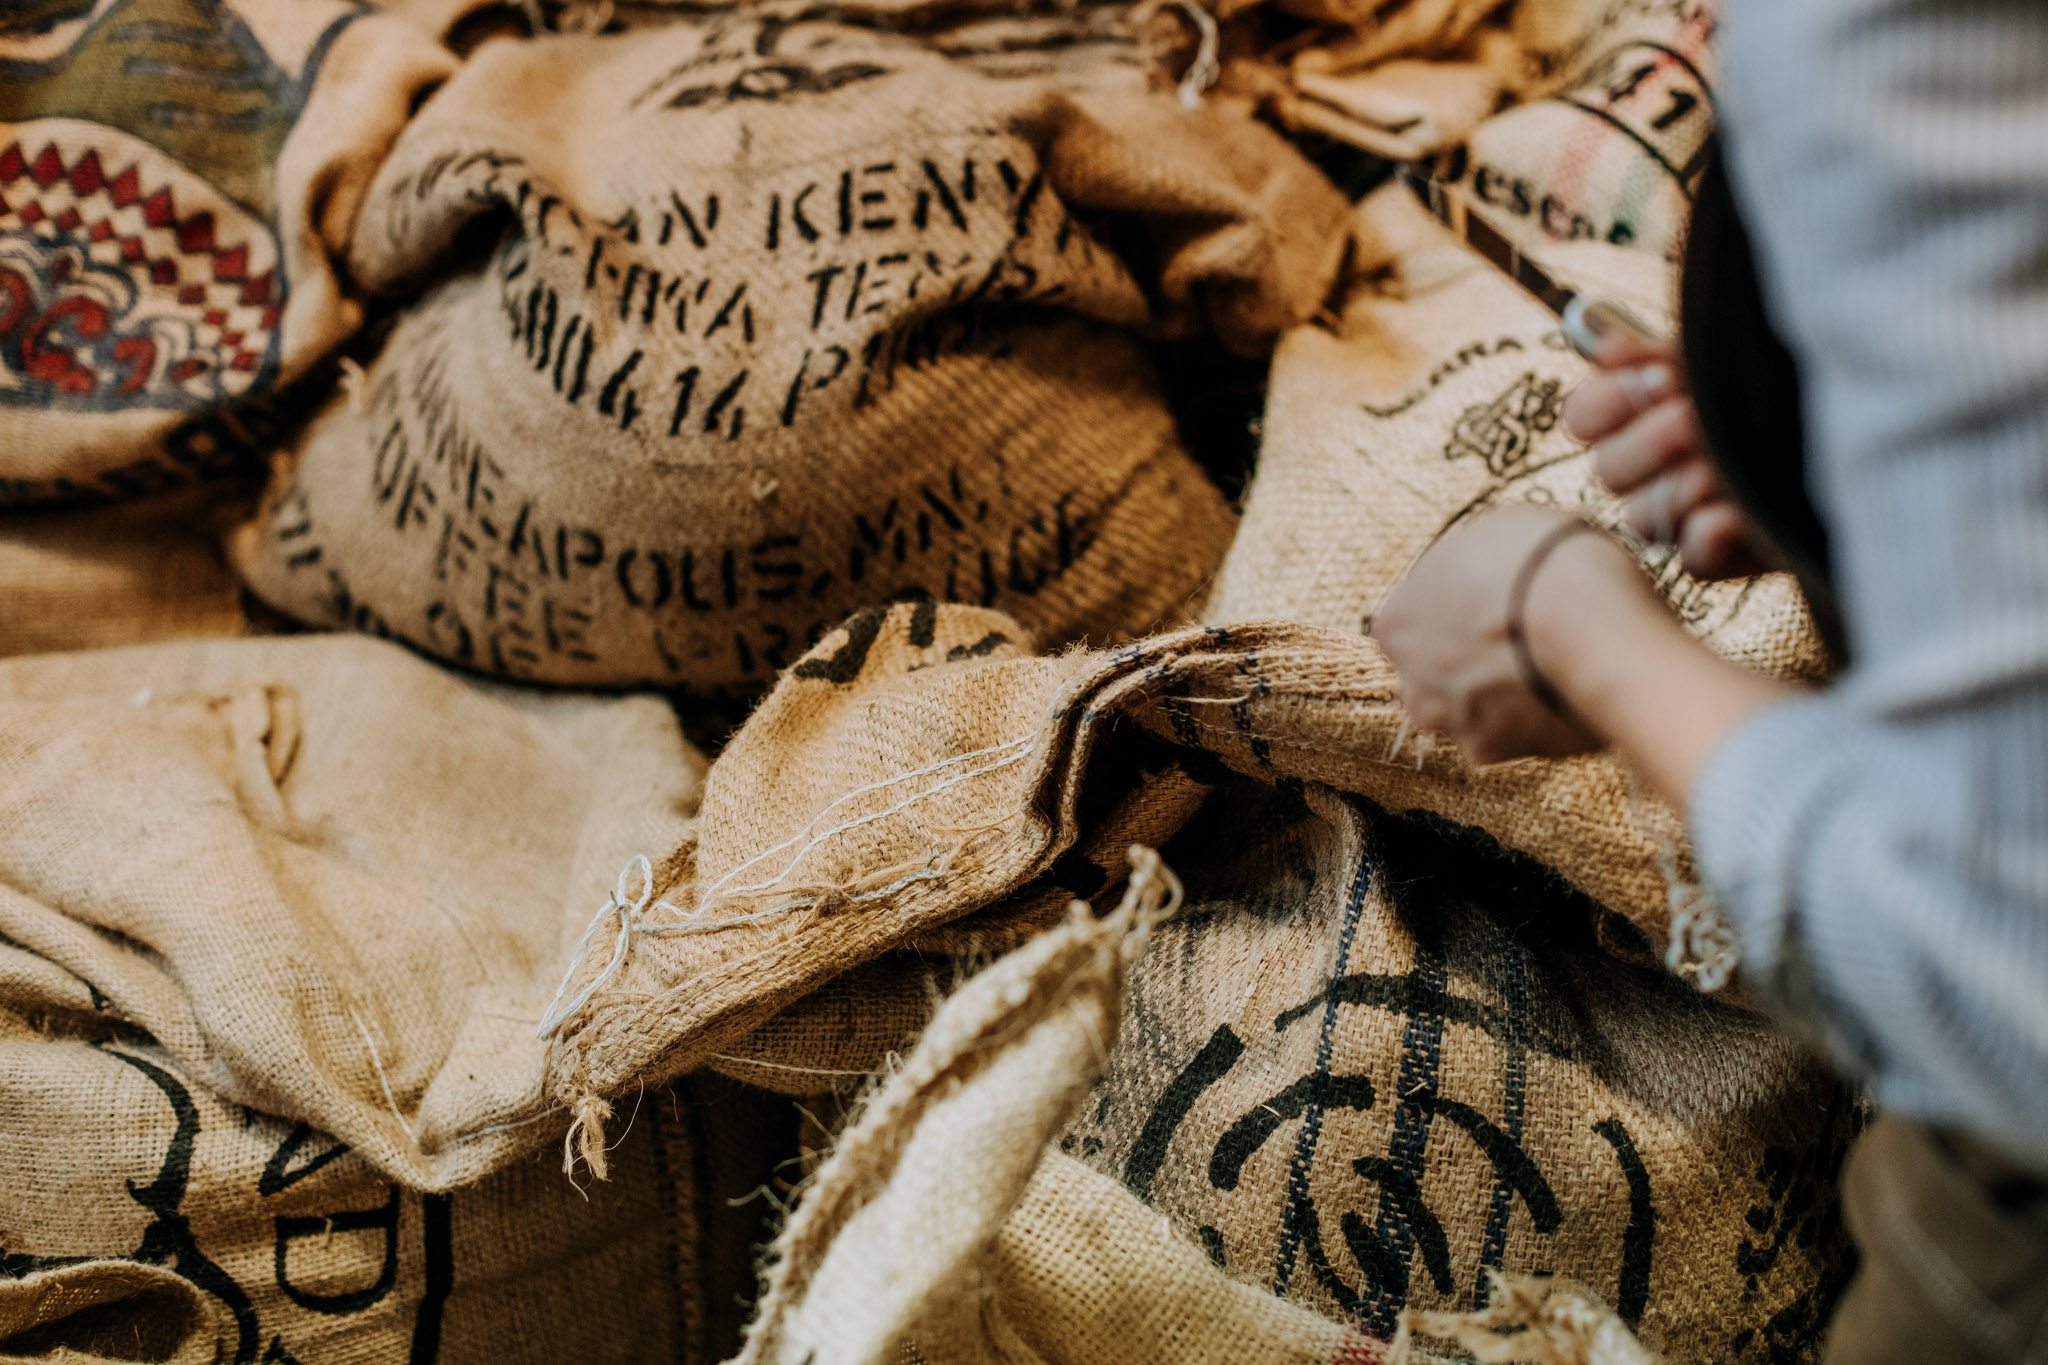 Wholesale Orders - Carefully and intentionally sourced from farmers around the world, we work closely with both importers and traders to gather a cohesive selection of beans to offer in a variety of batch sizes. Roasted weekly, inquire below for a list of our current offerings and relative pricing.